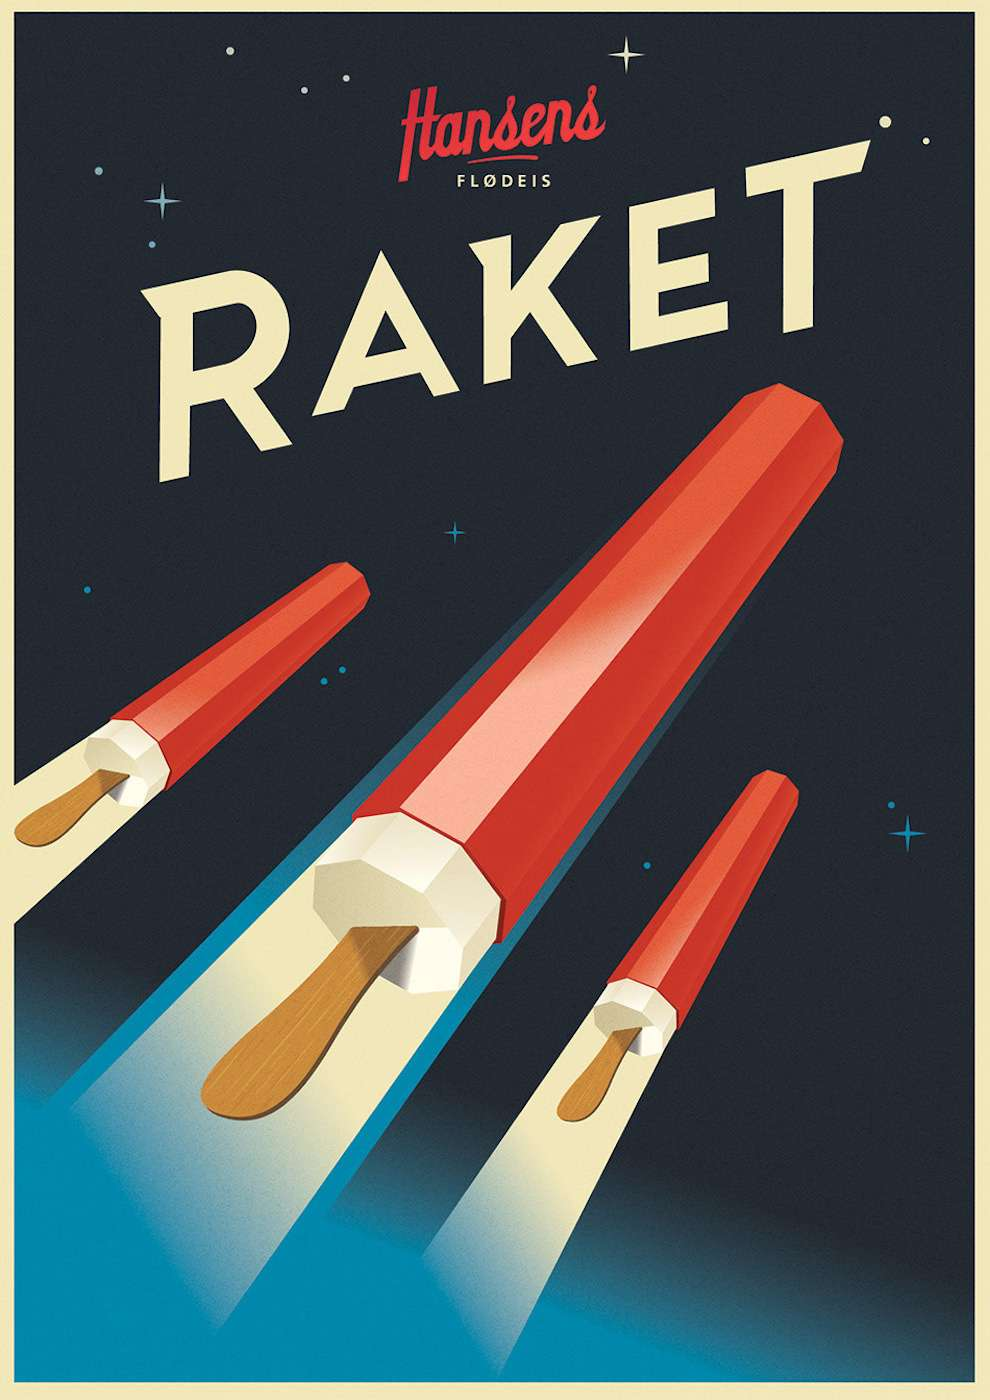 Mads Berg, Art deco digital vintage illustration of popsicles disguise as rockets. Advertising for Hansens